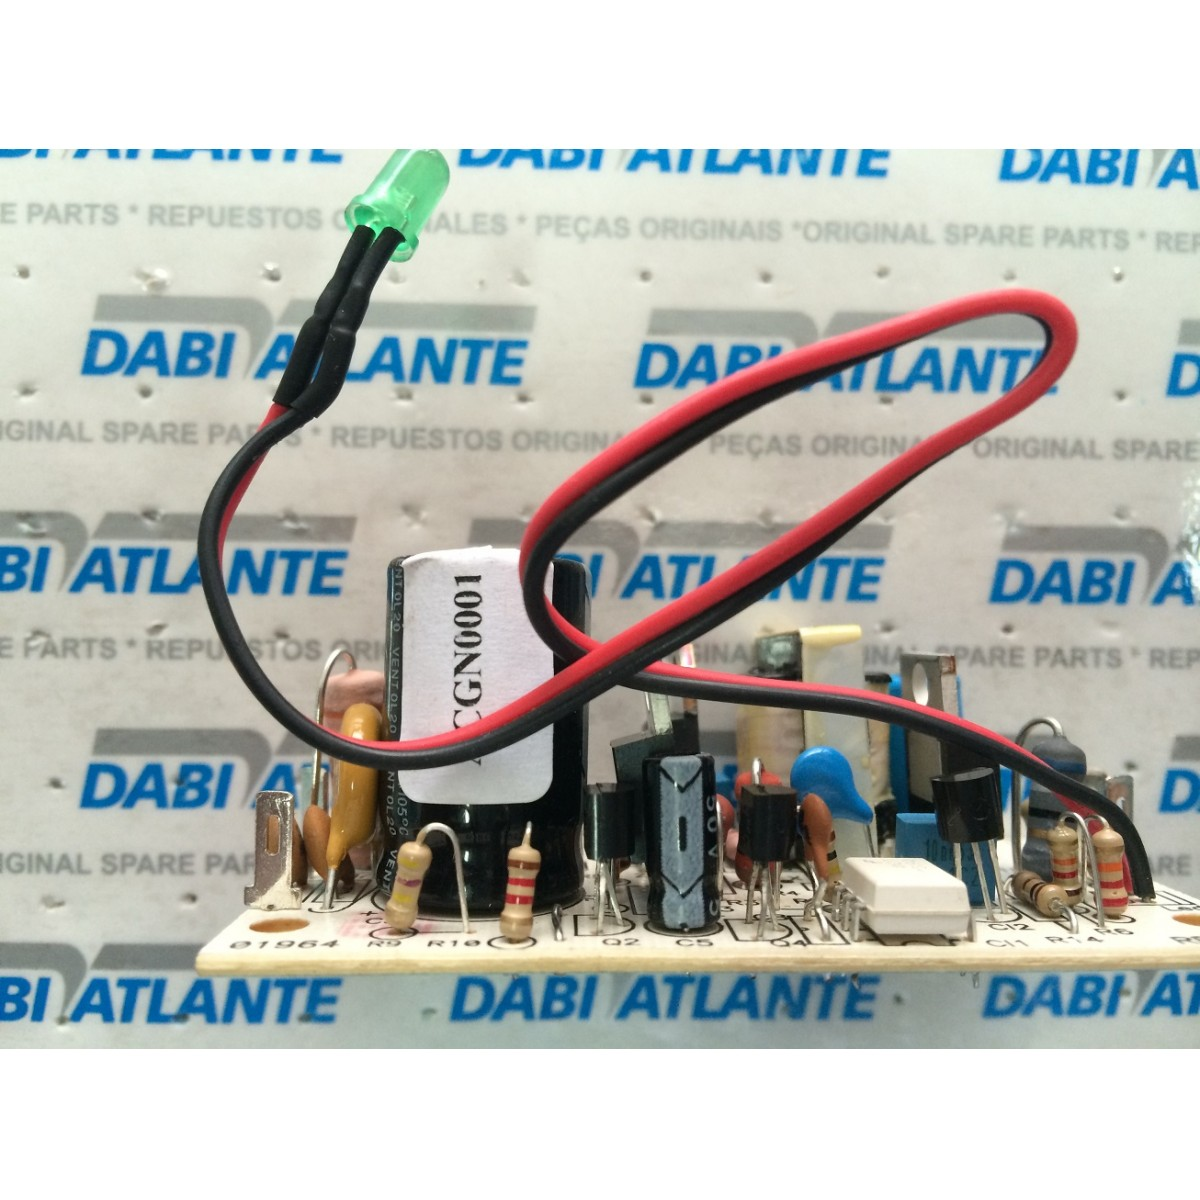 Placa fonte Ultraled com saída 7,5 VDC  - DABI ATLANTE - TOP ODONTO